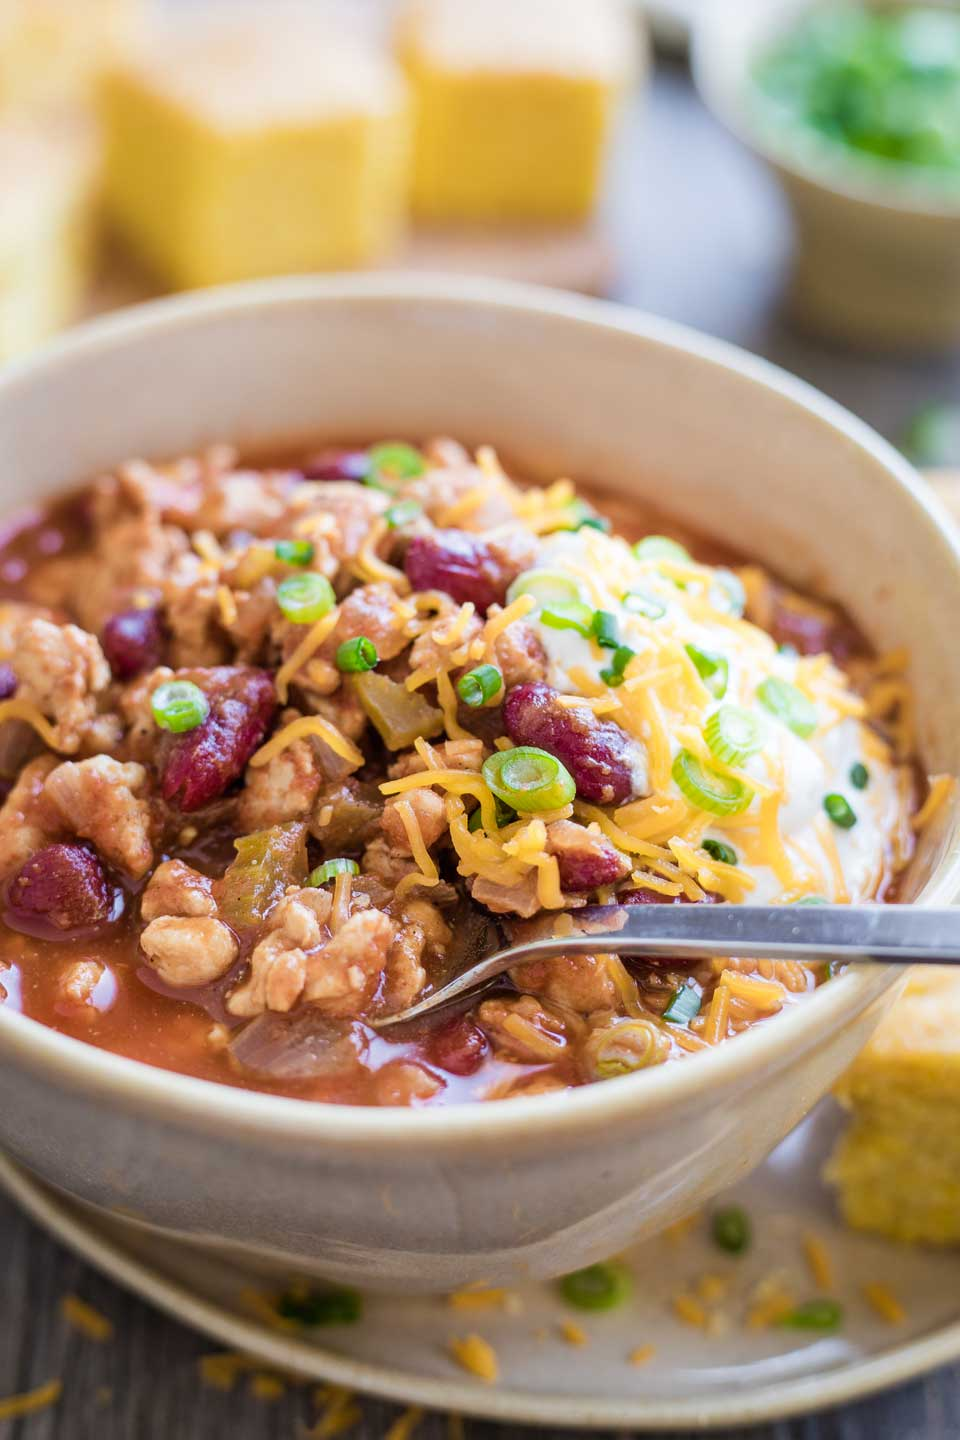 bowl of turkey chili with toppings, served next to wedge of corn bread for dinner